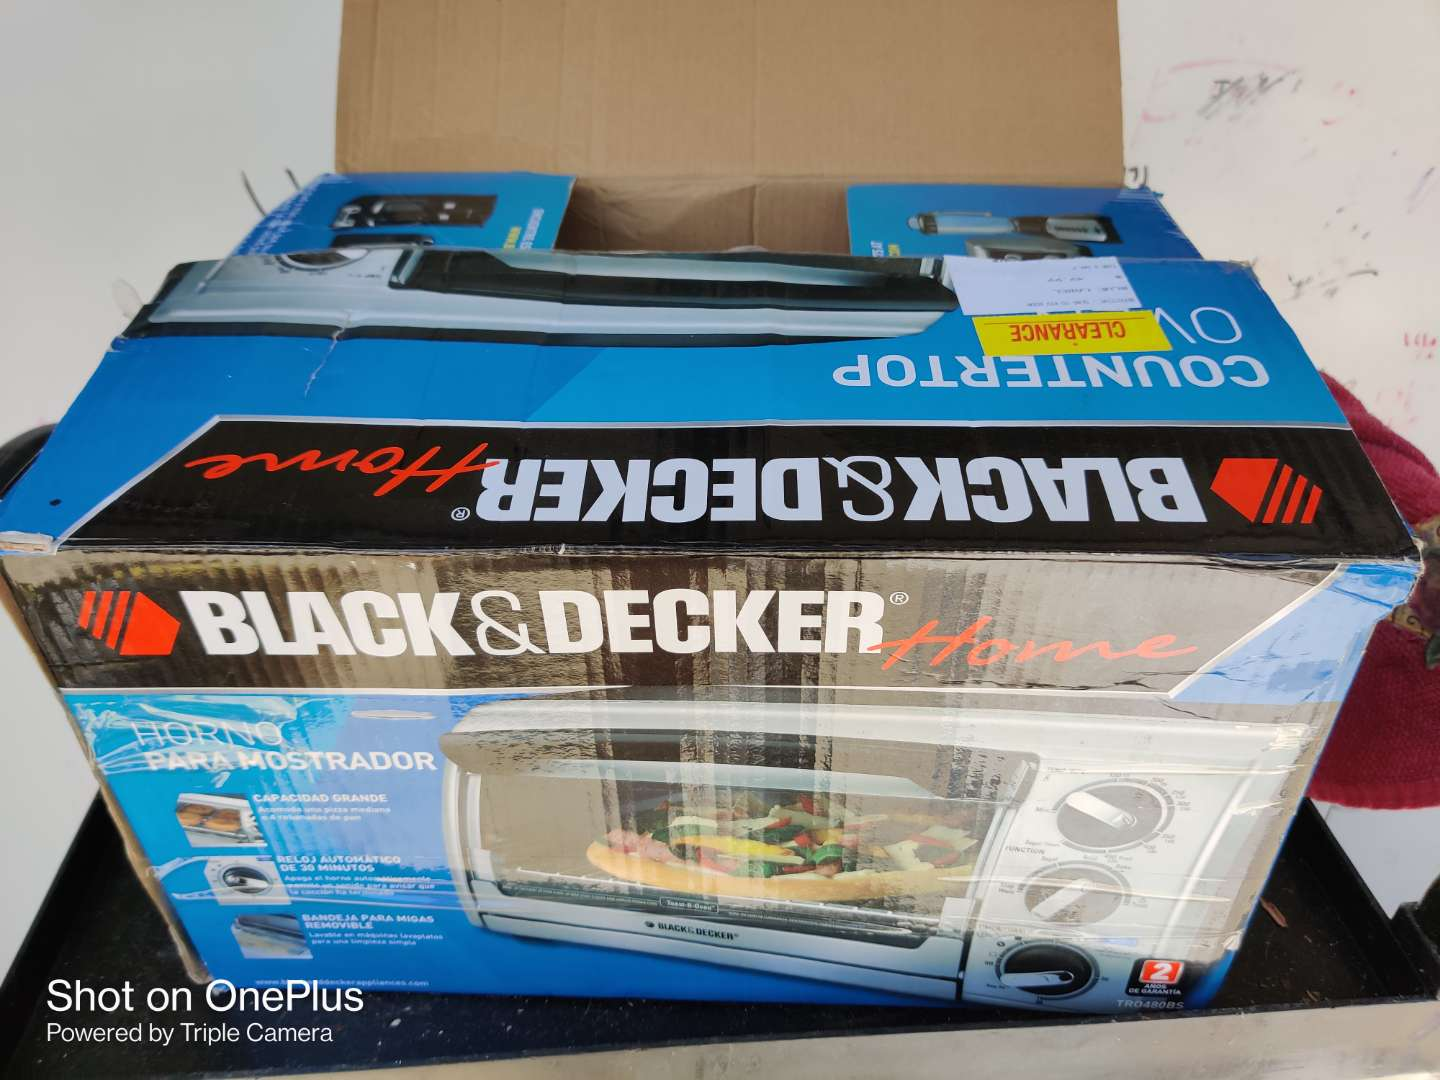 498 Black & Decker toaster oven used